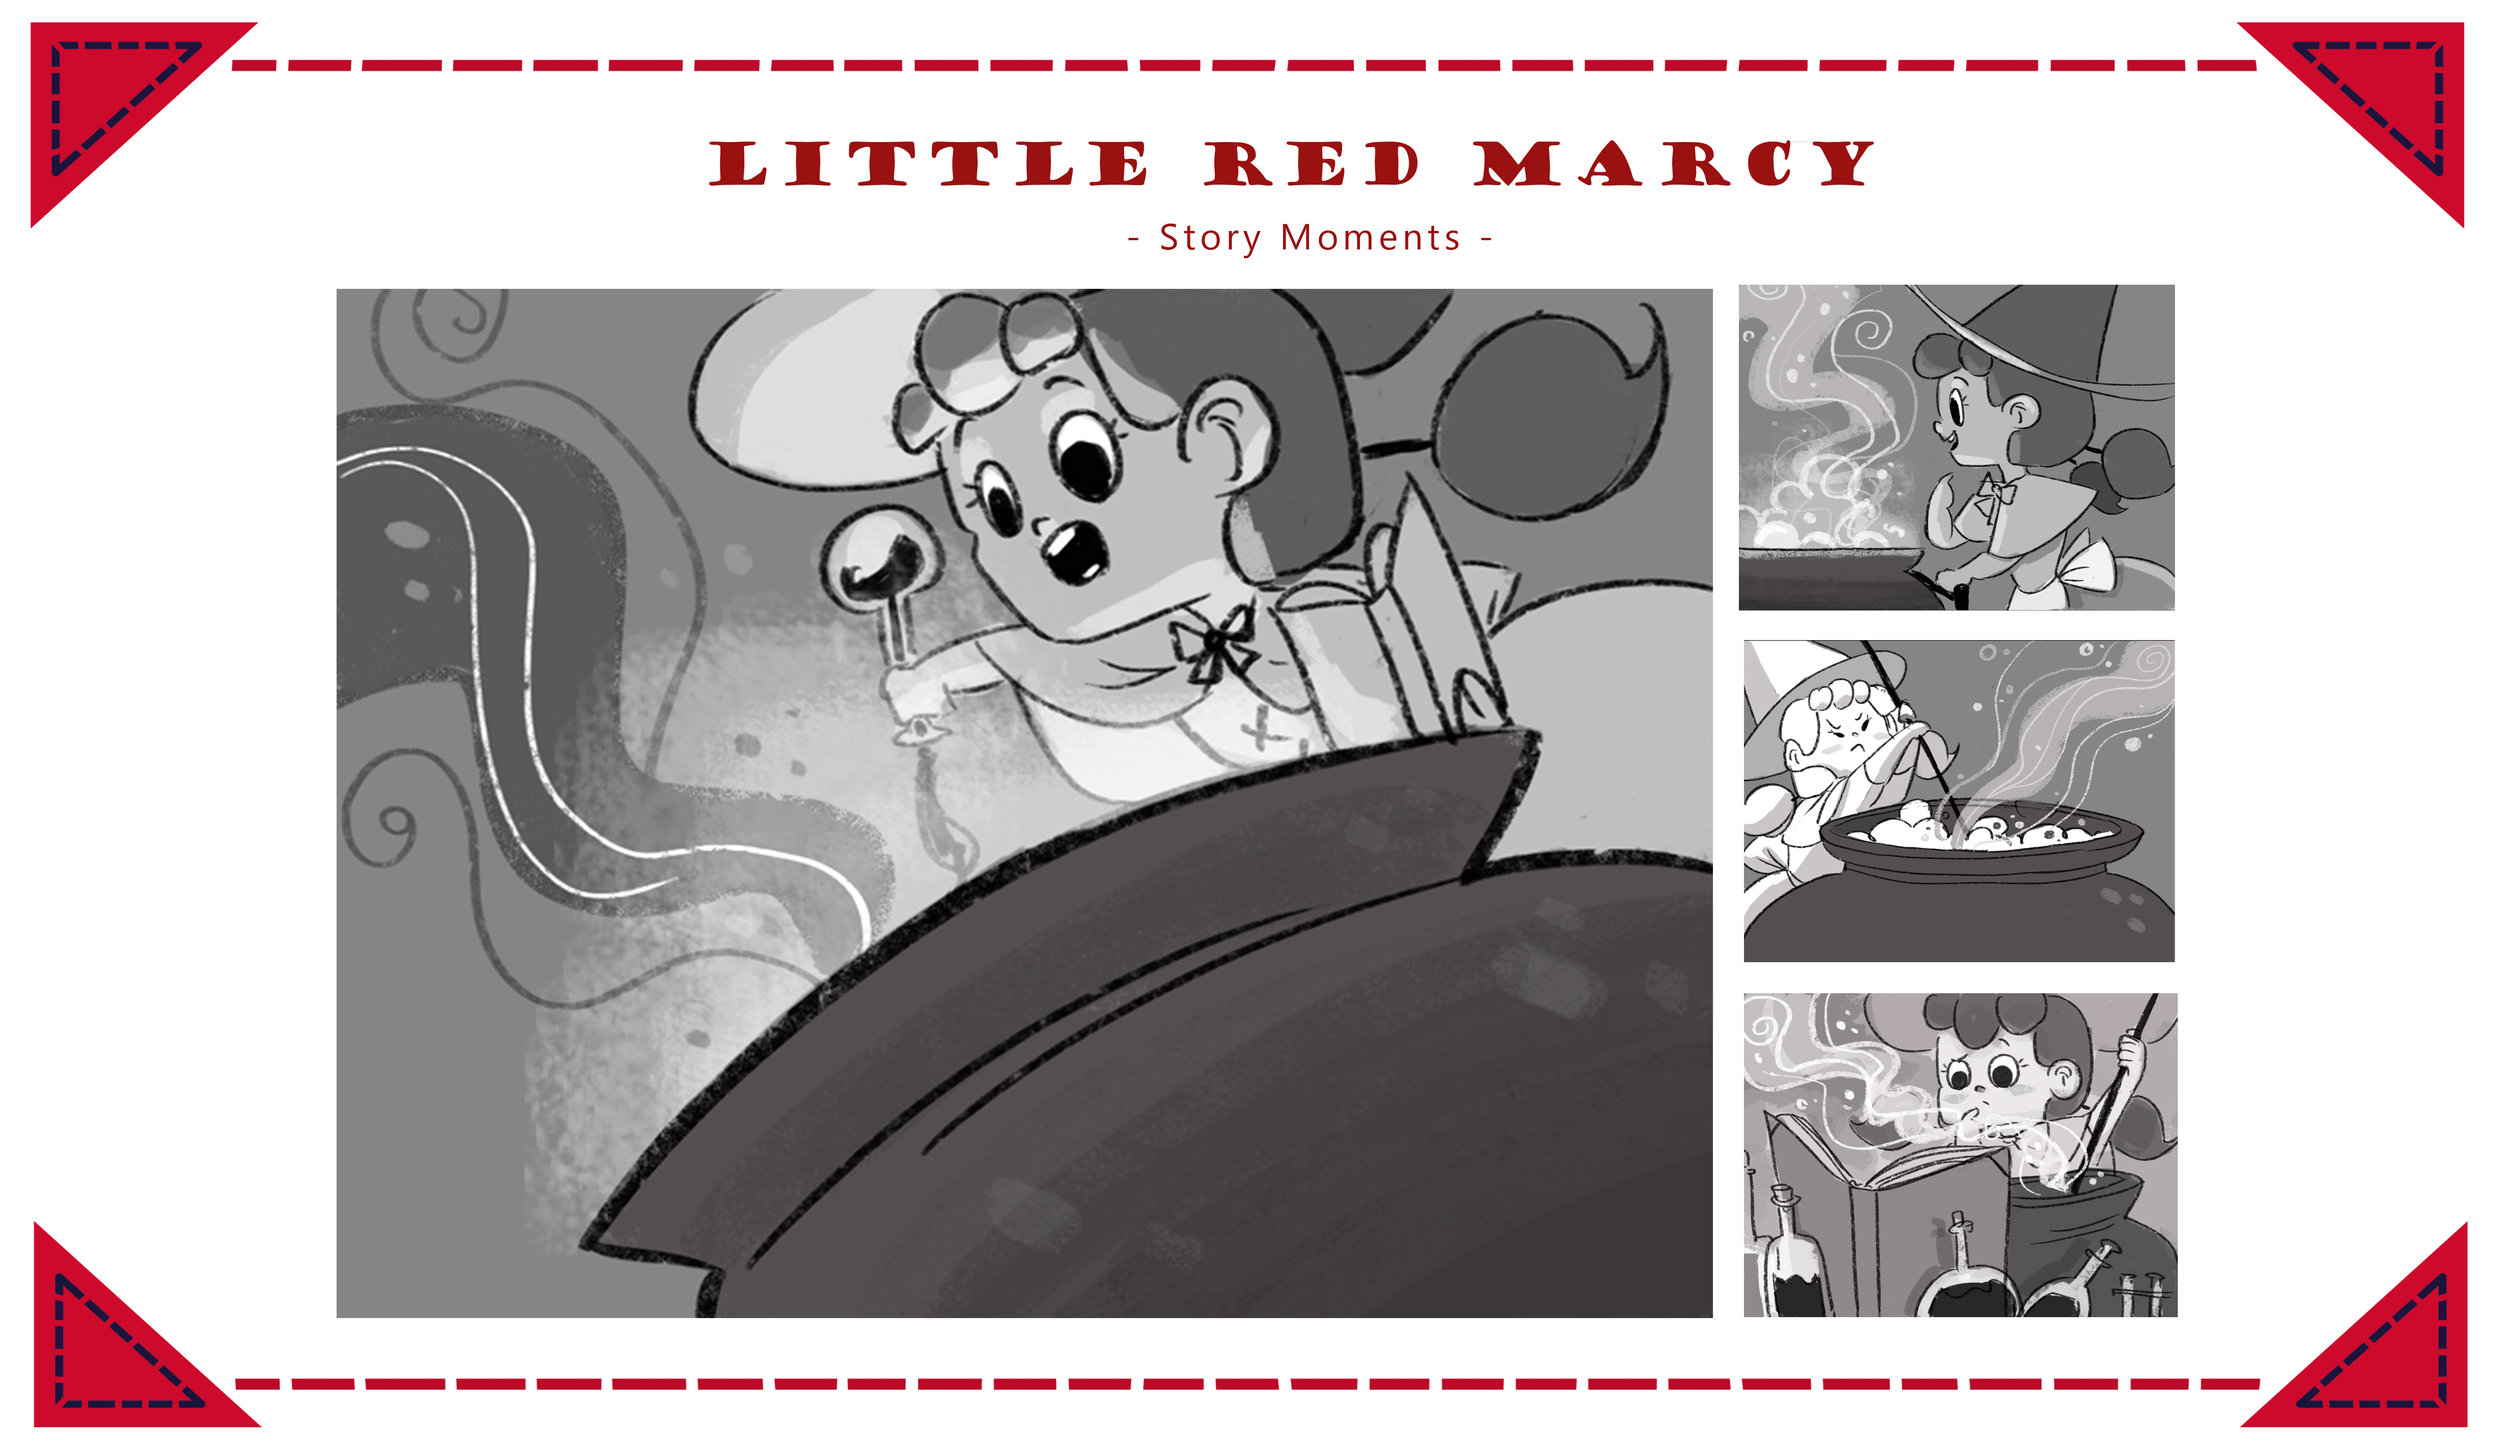 Little Red Marcy_03.jpg